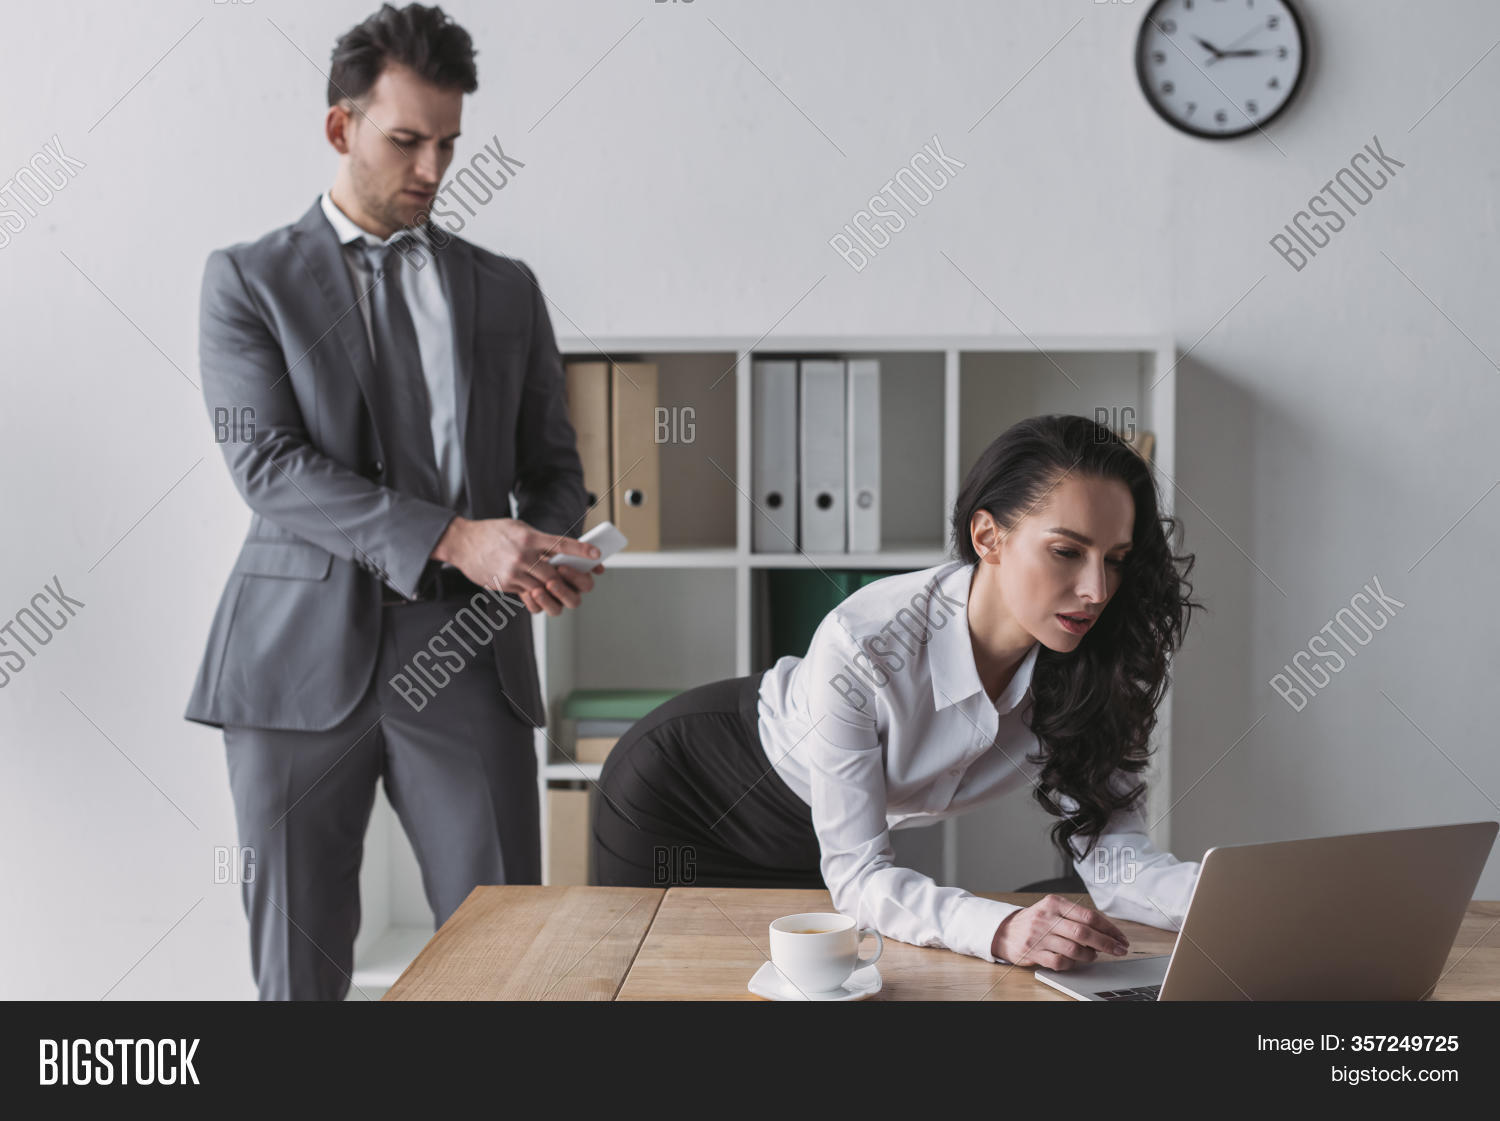 Handsome Businessman Taking Picture Of Buttocks Of Secretary Standing At Workplace